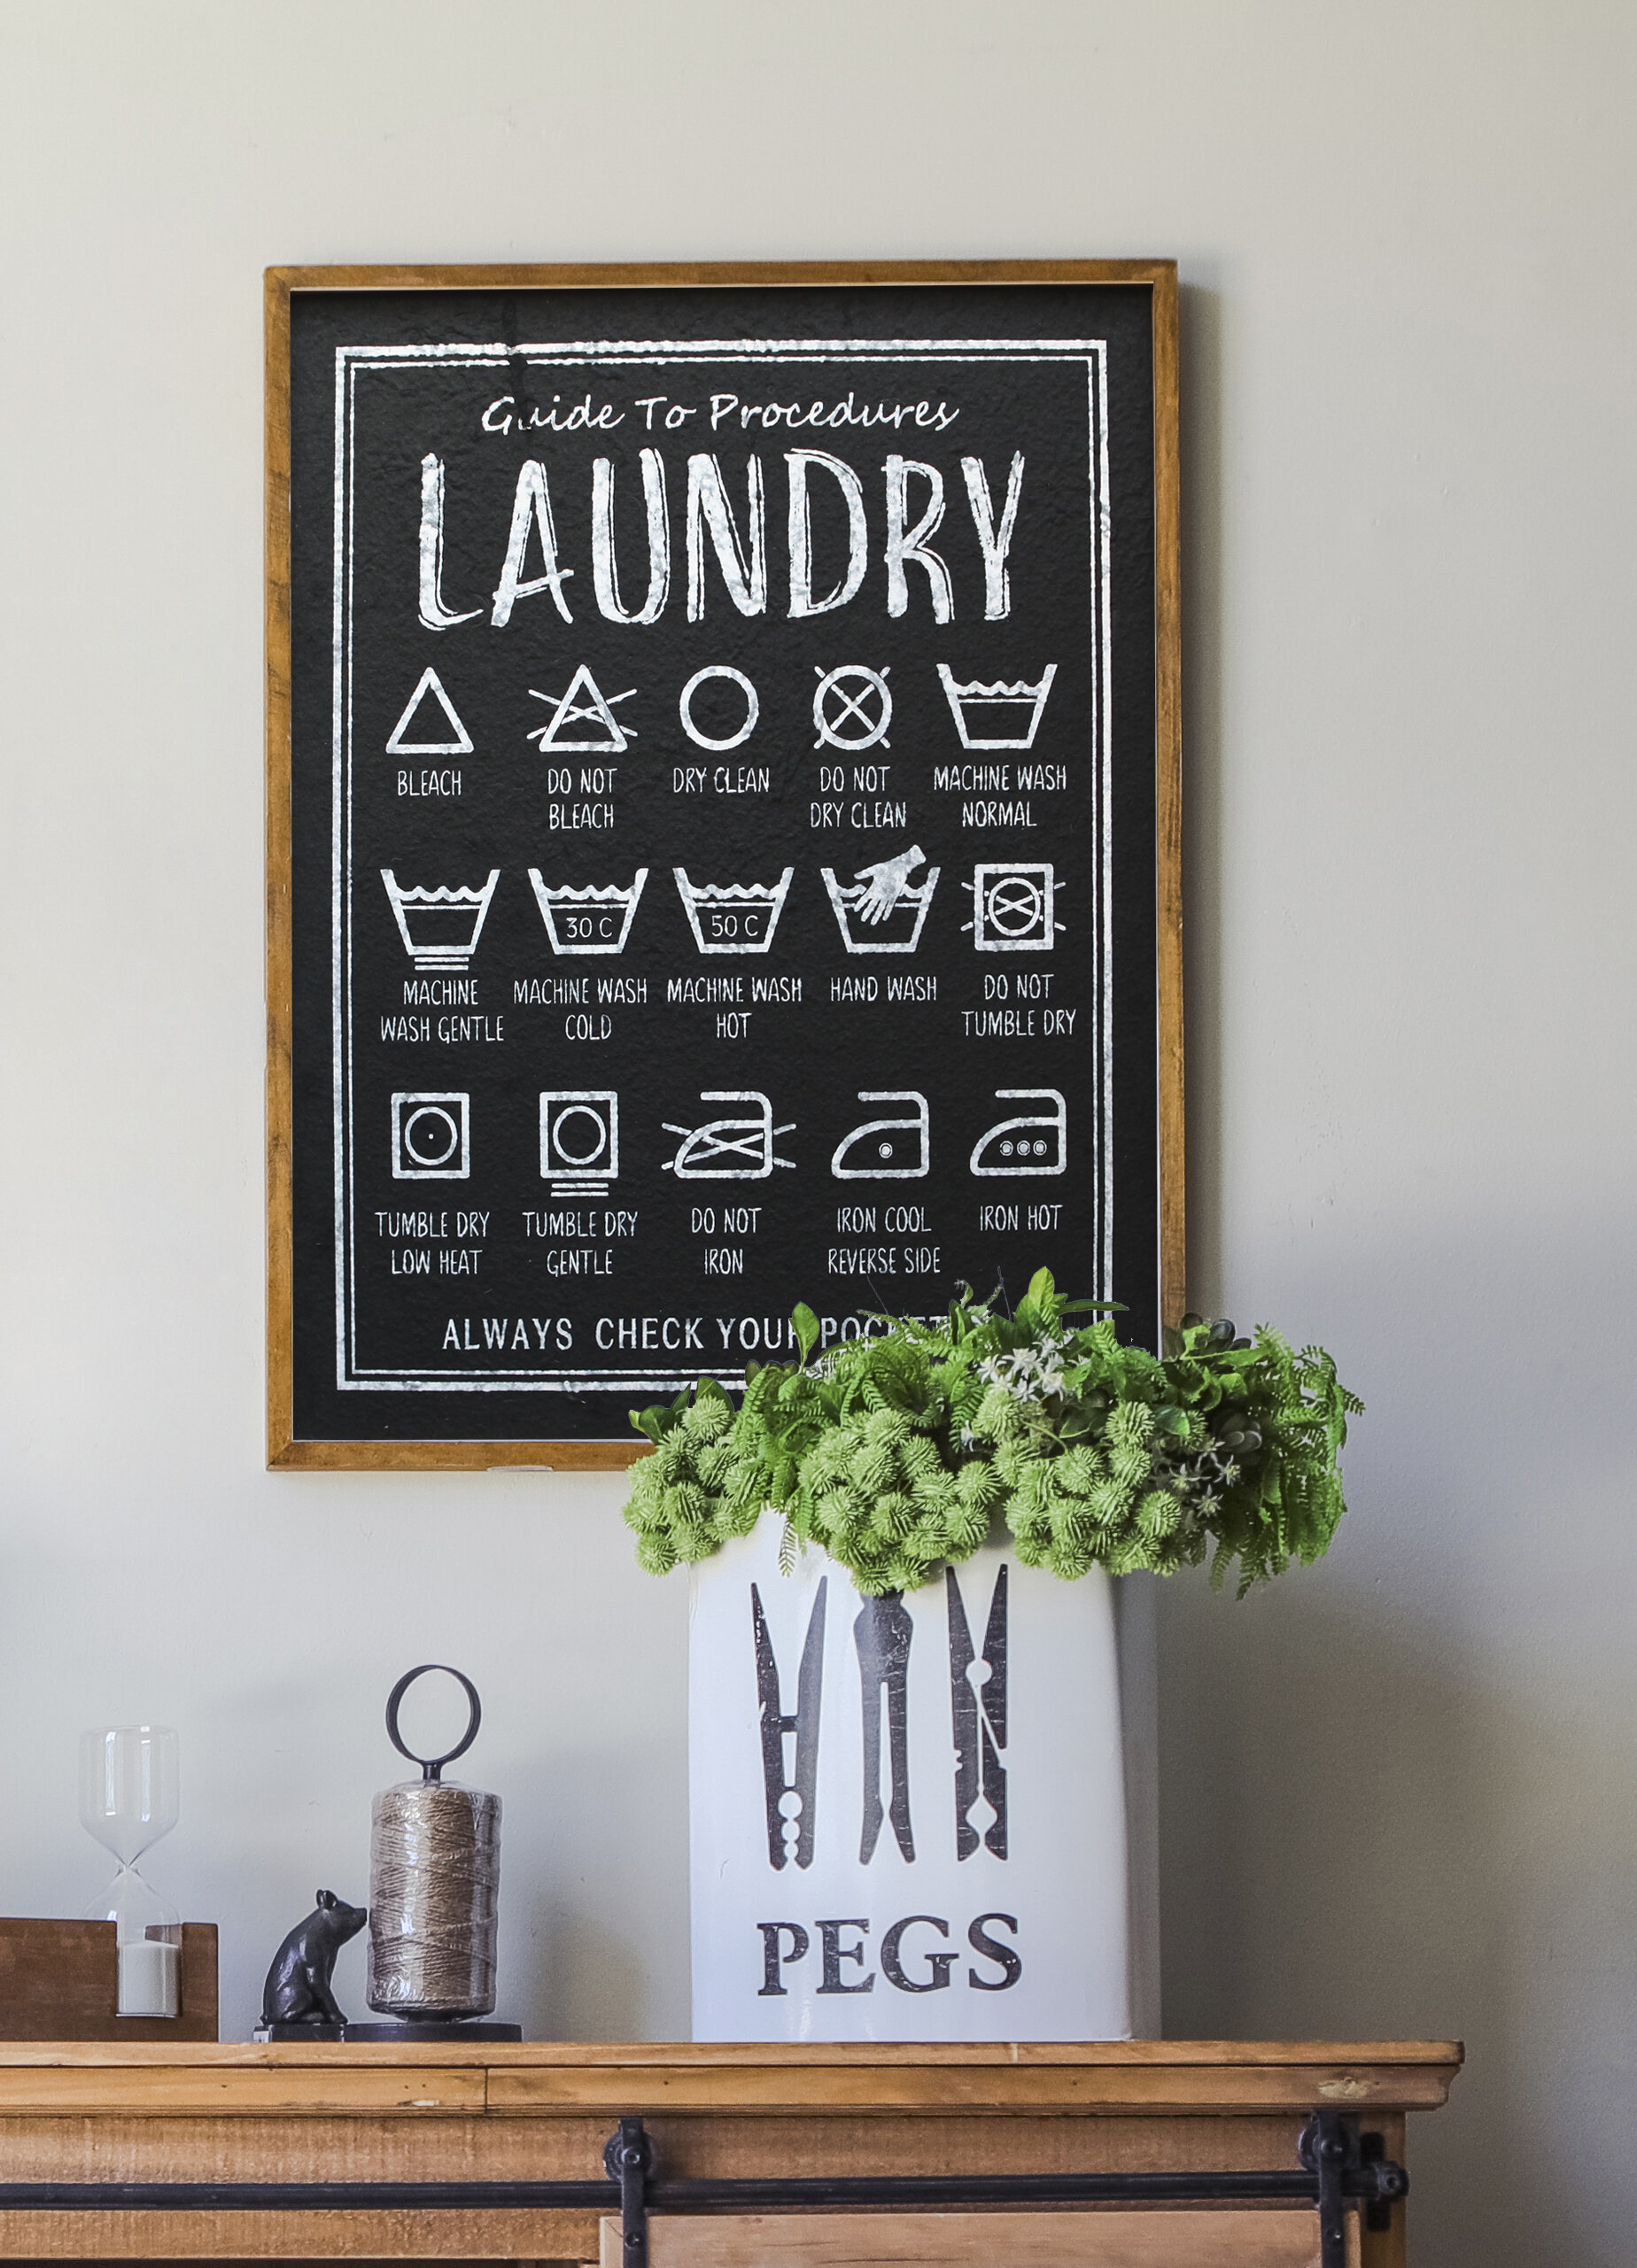 Mike Melissa Framed Laundry Symbols Guide Wood Wall Sign Reviews